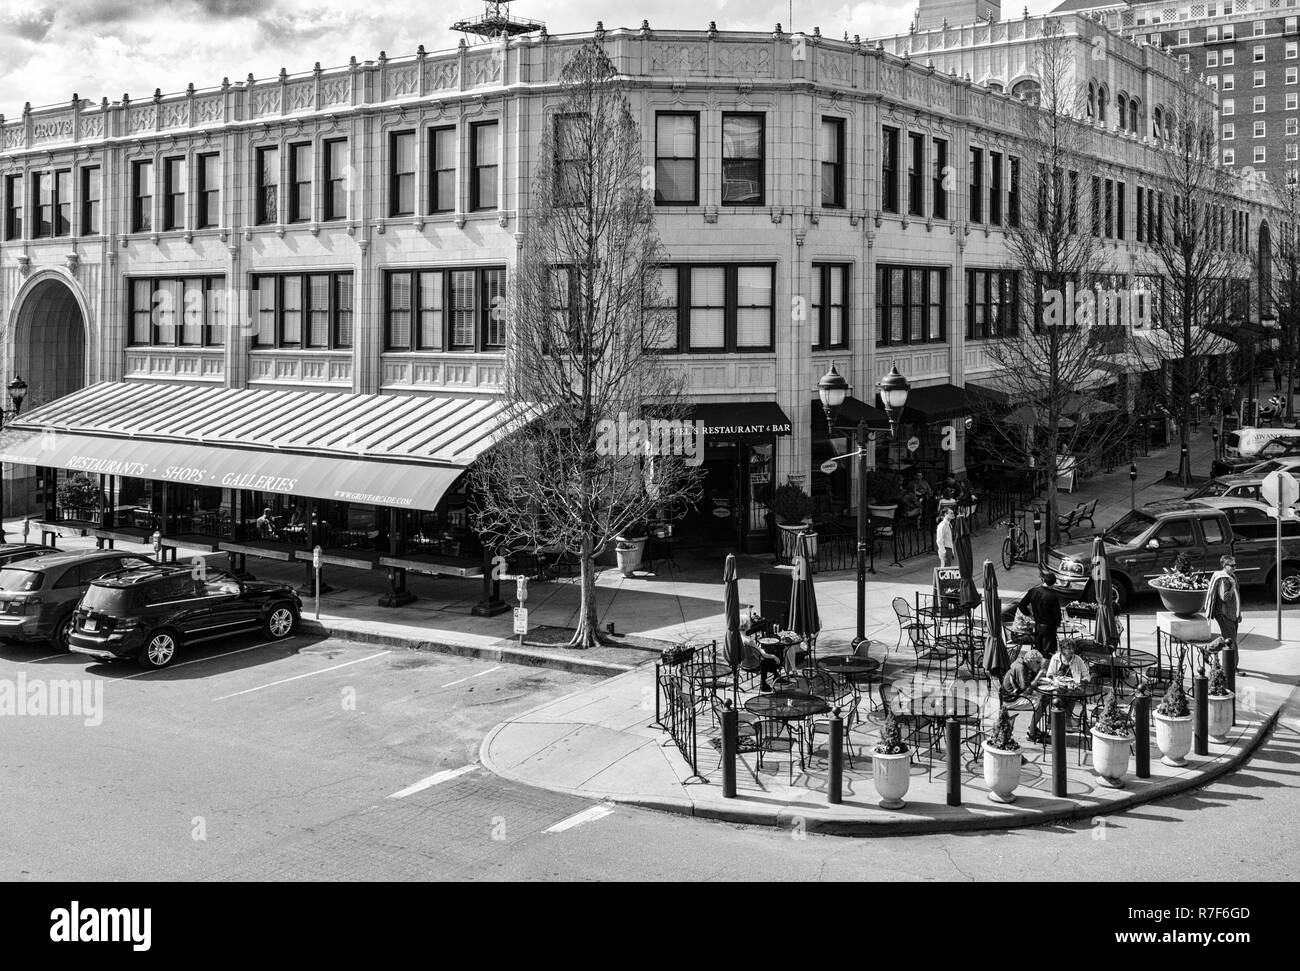 Tourists walk in front of The Grove Arcade in the Downtown Asheville Historic District, the Battery Park Apartments building seen behind it. - Stock Image